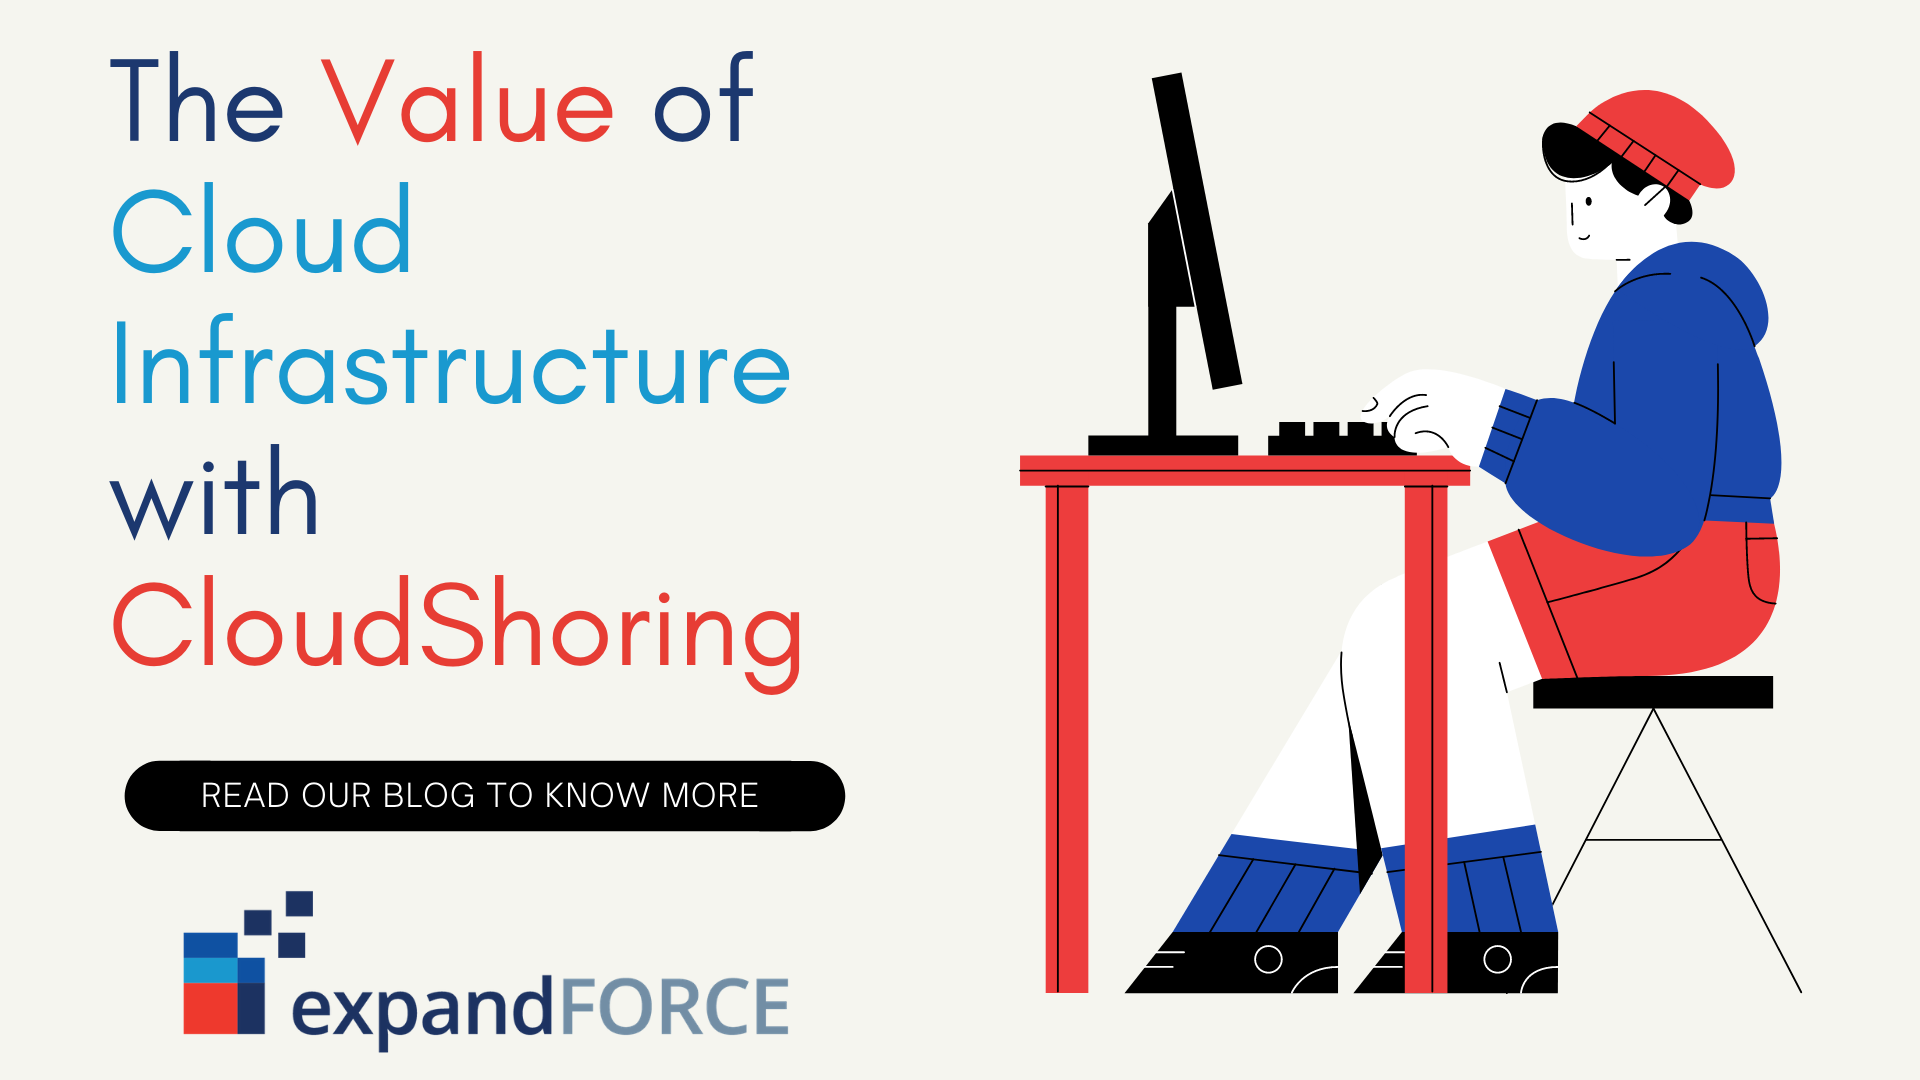 Enabling Customers Maximize the Value of Cloud Infrastructure with CloudShoring